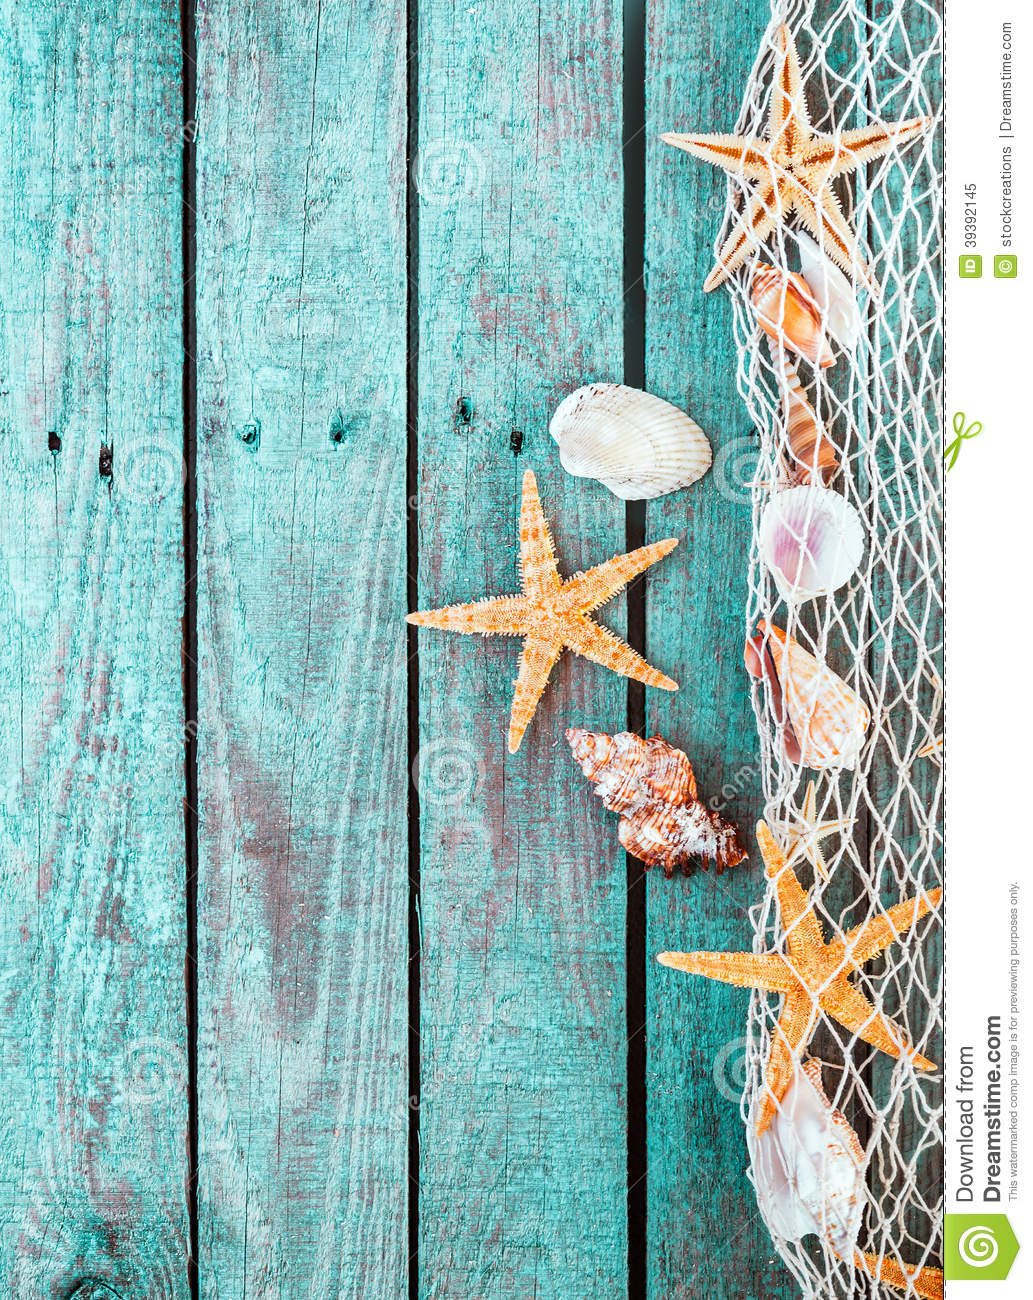 Marine Border Of Fishnet With Shells And Starfish Stock